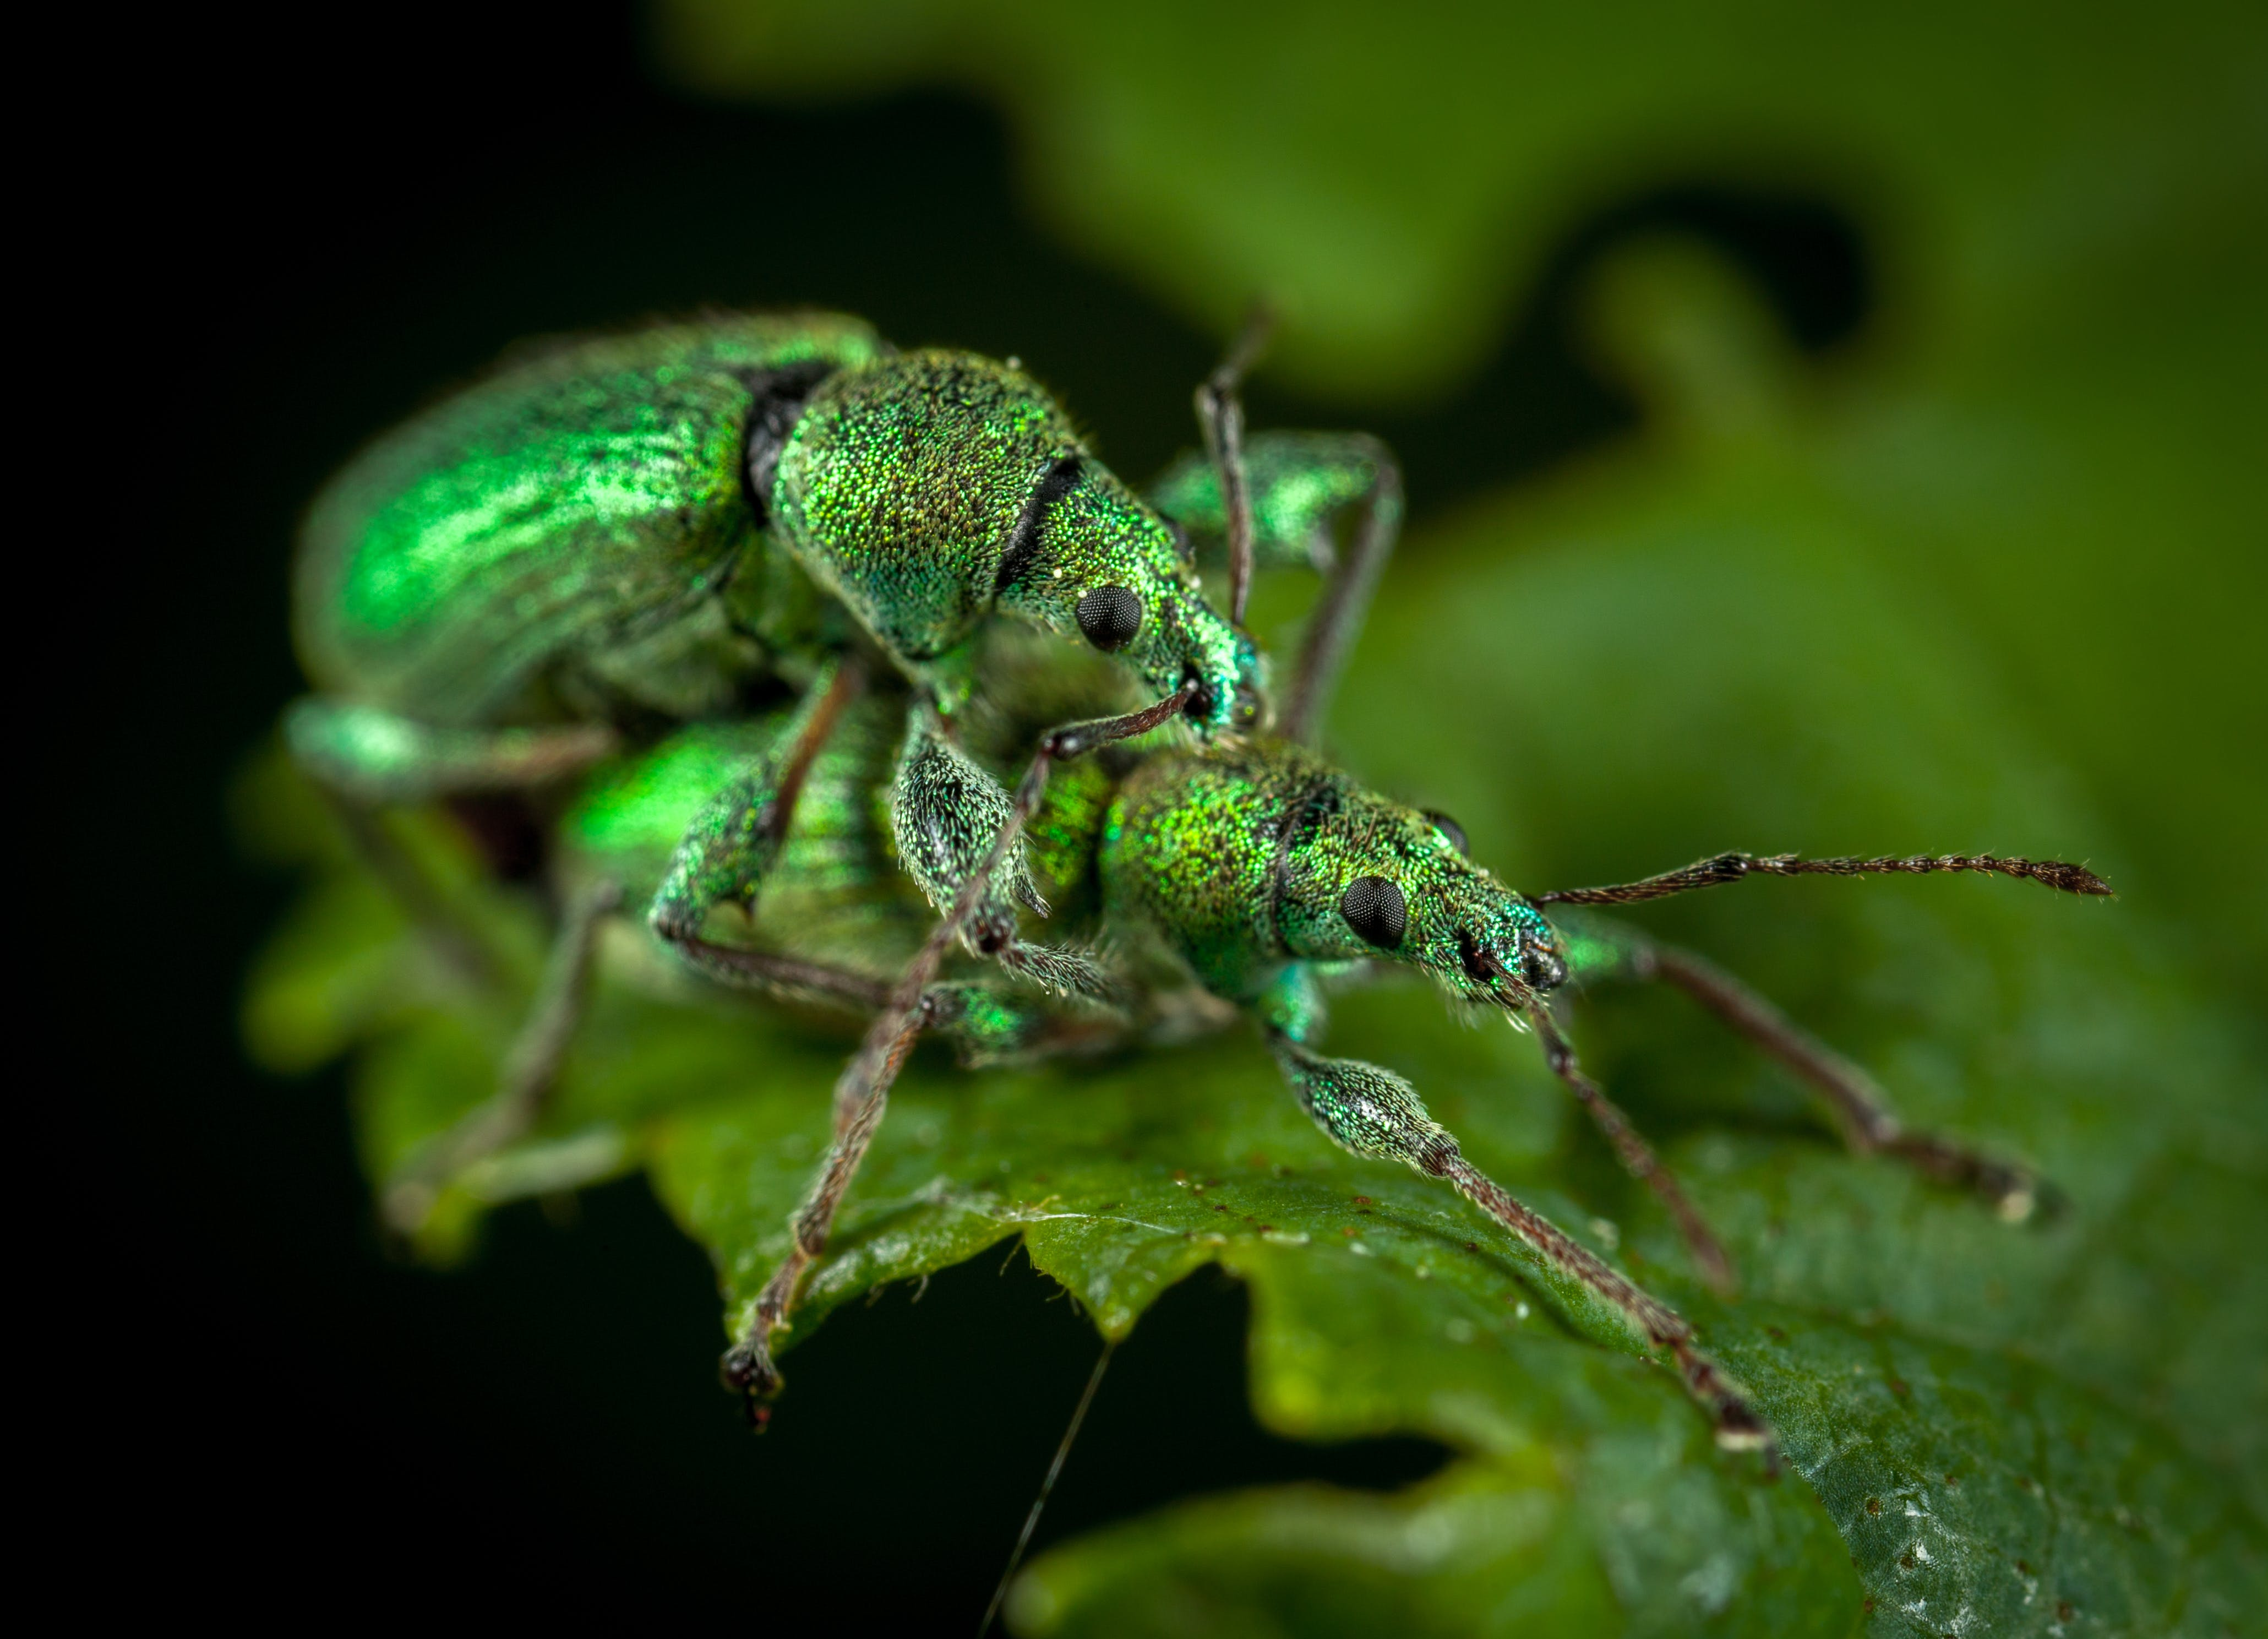 Close Up Photo of Two Jewel Weevils on Green Leaf